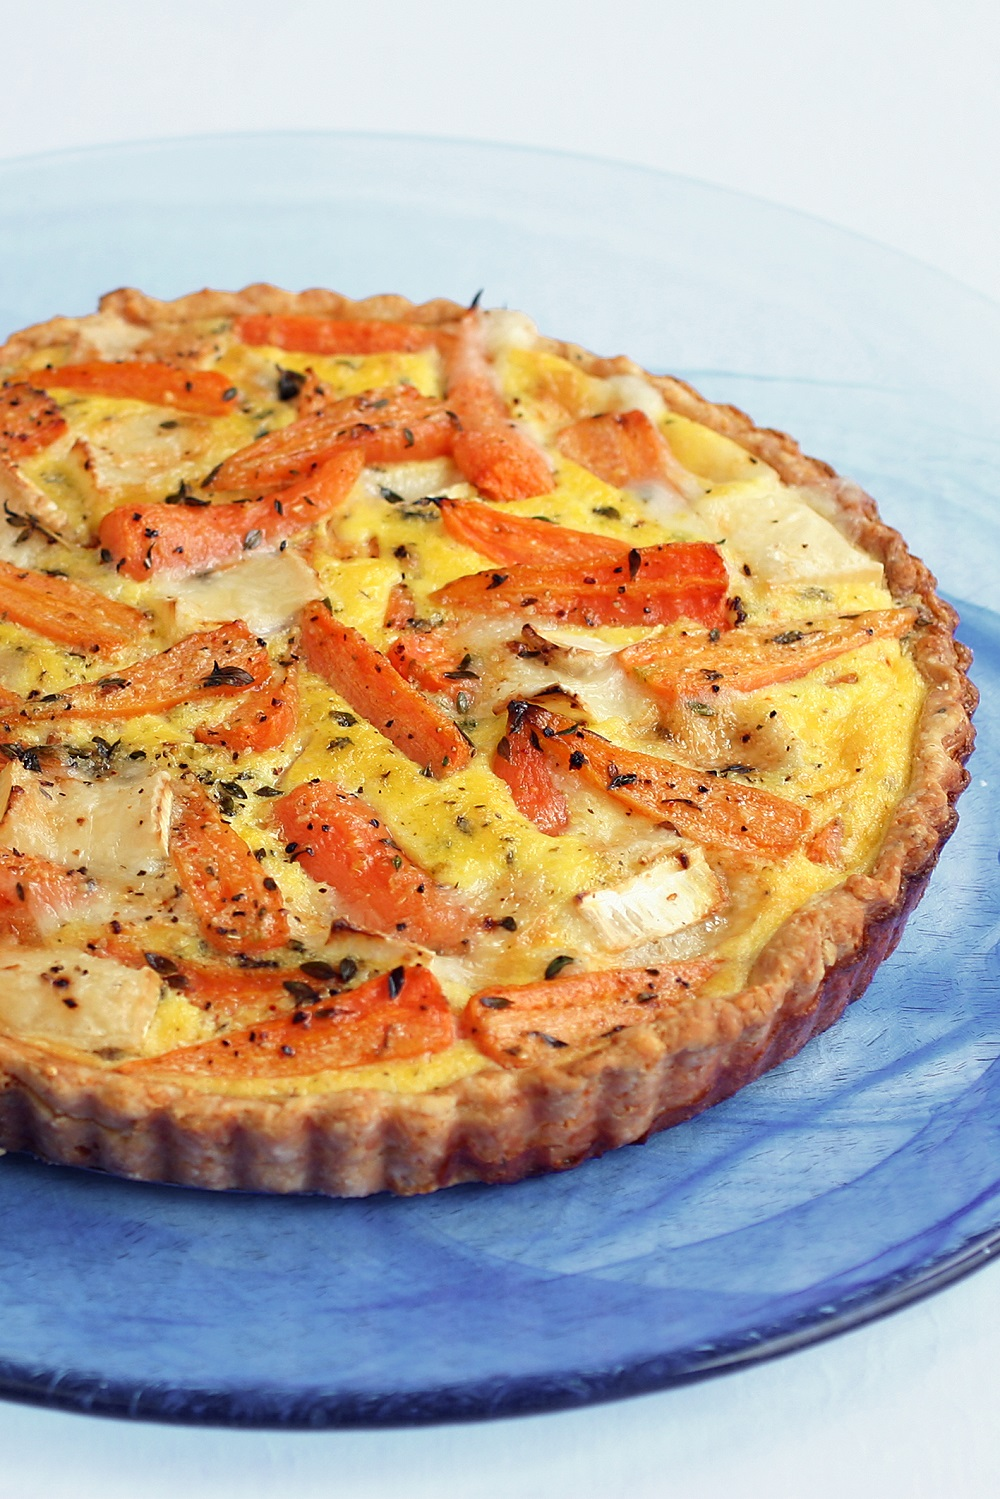 How To Make A Chantenay, Thyme And Goat's Cheese Tart